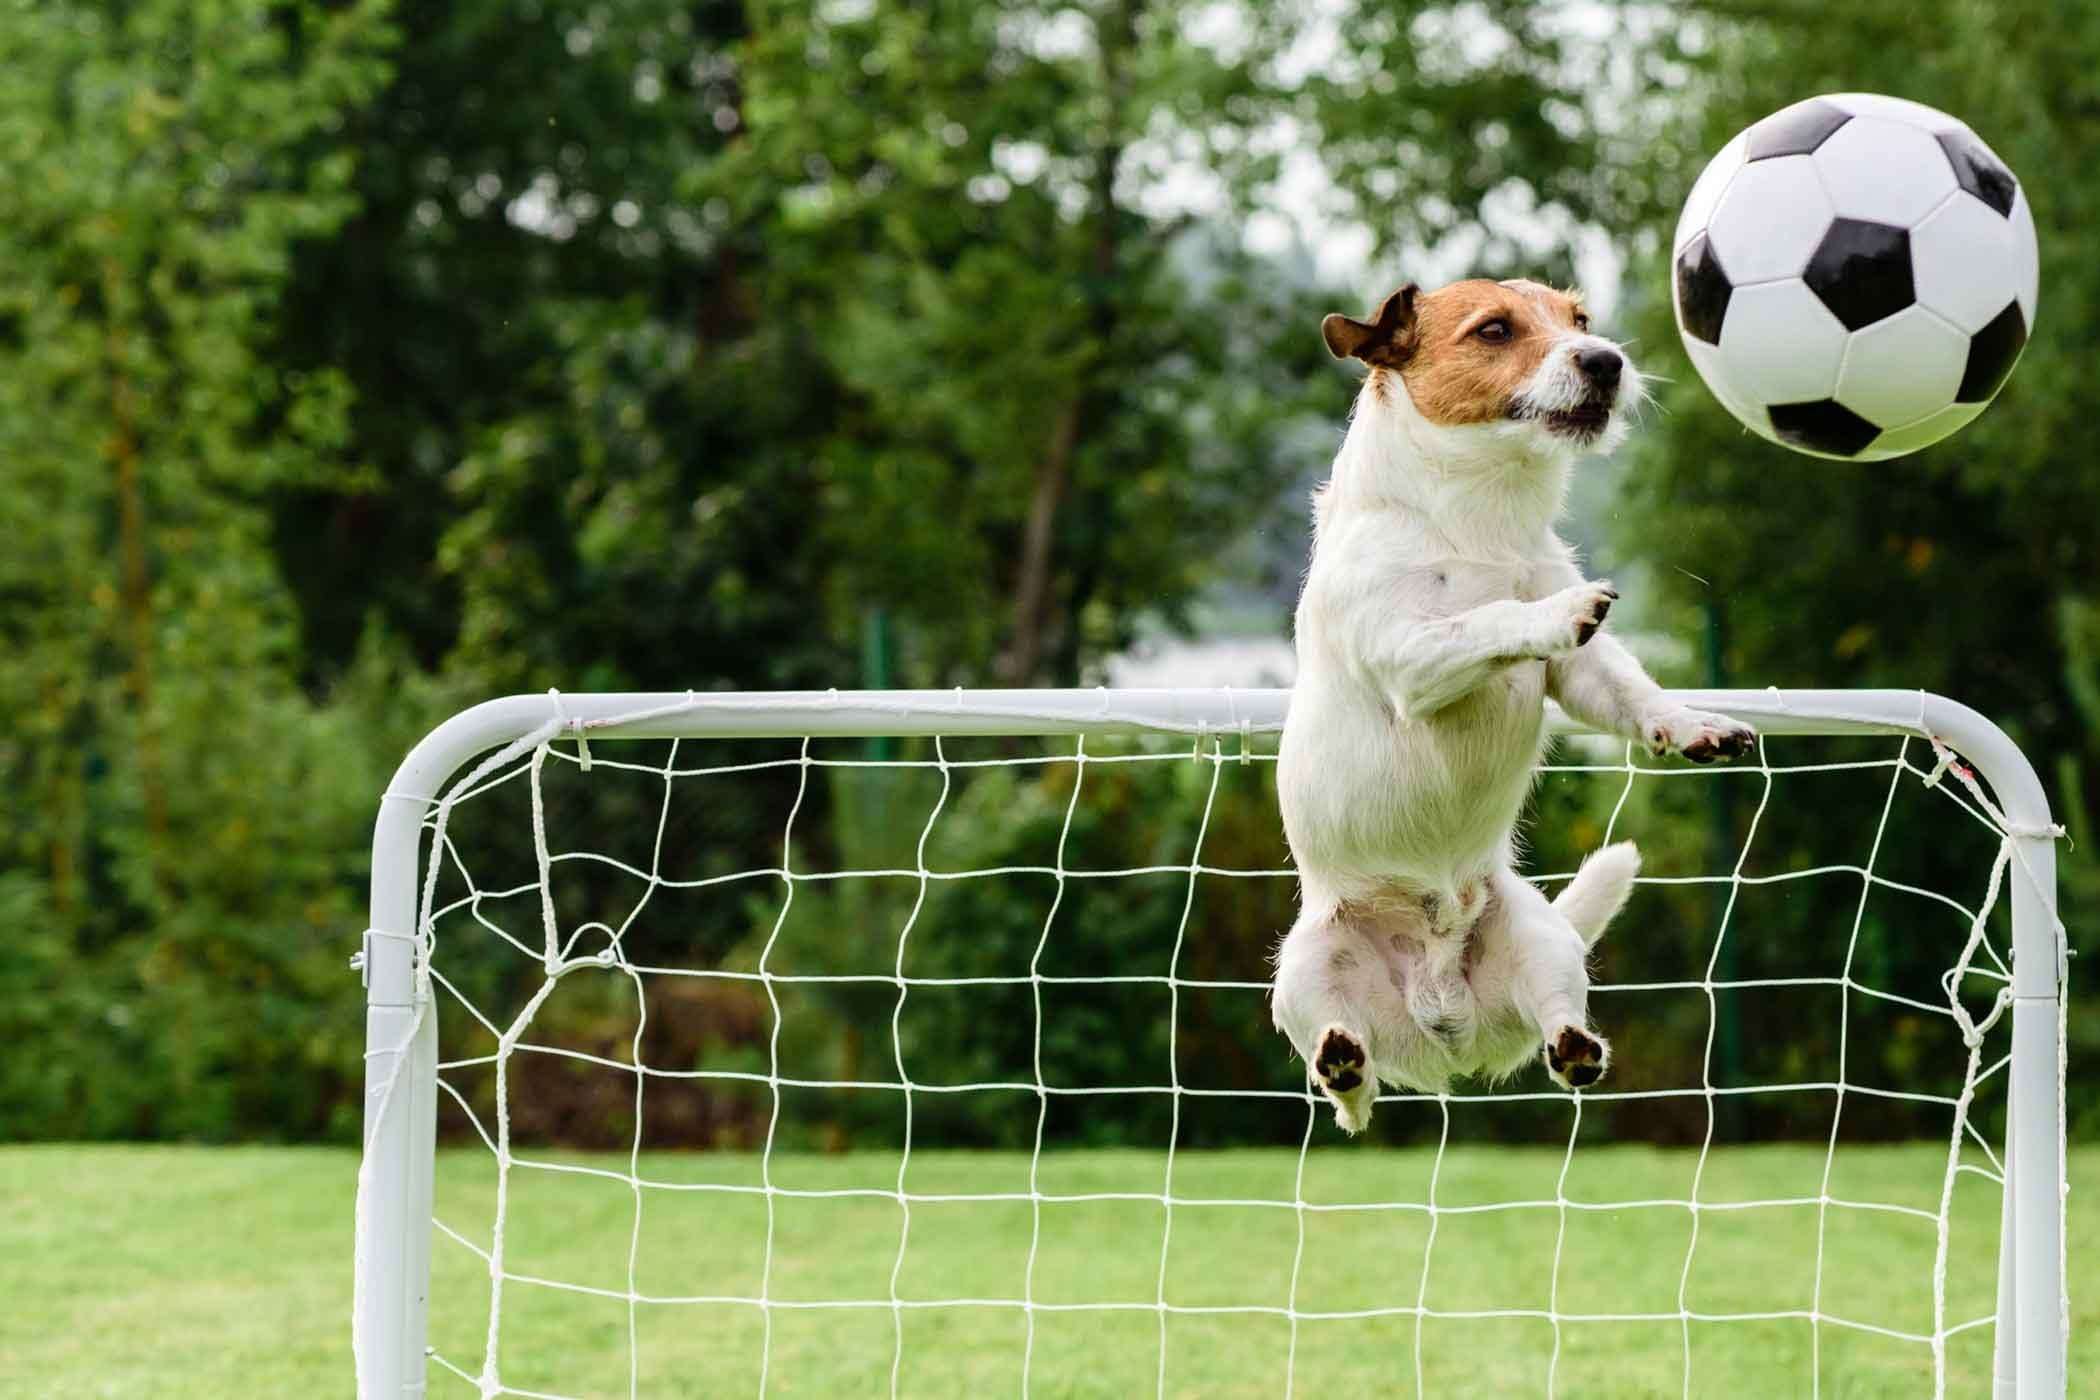 19 Happy dogs who are having the best day ever: Smiling dog  |Dog Play